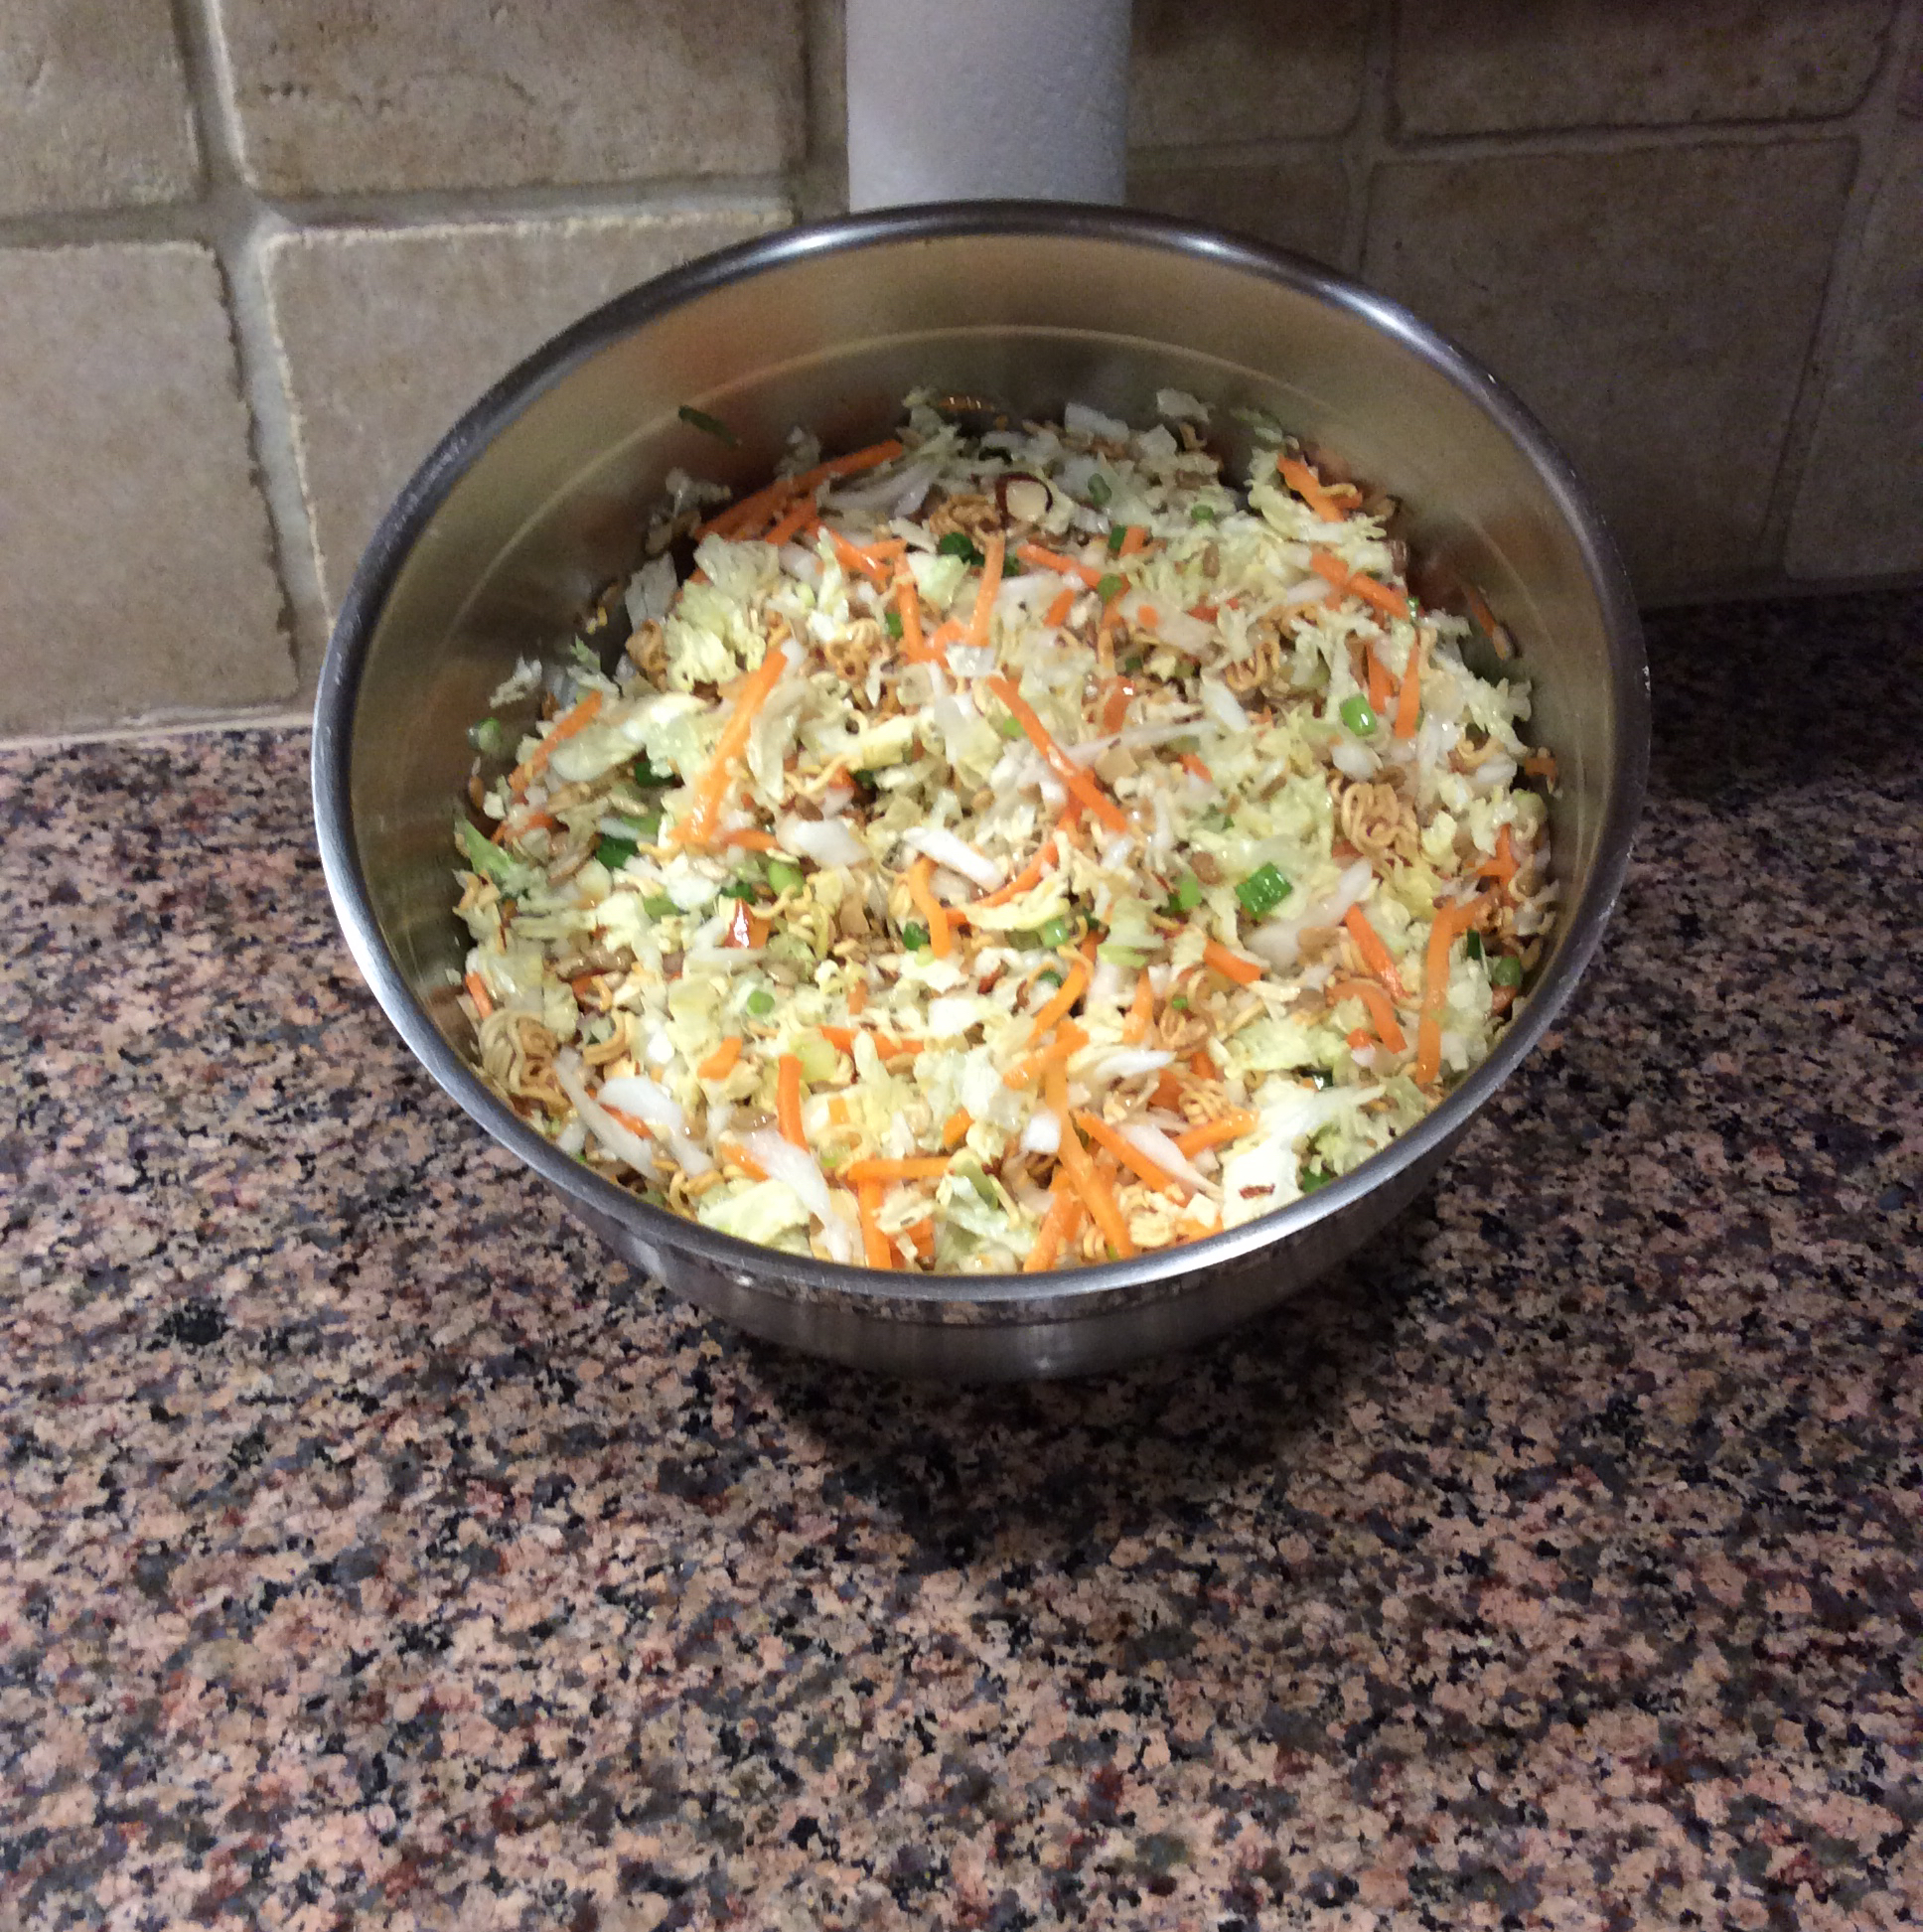 Million Dollar  Chinese Cabbage Salad Specialsheryl18@gmail.com